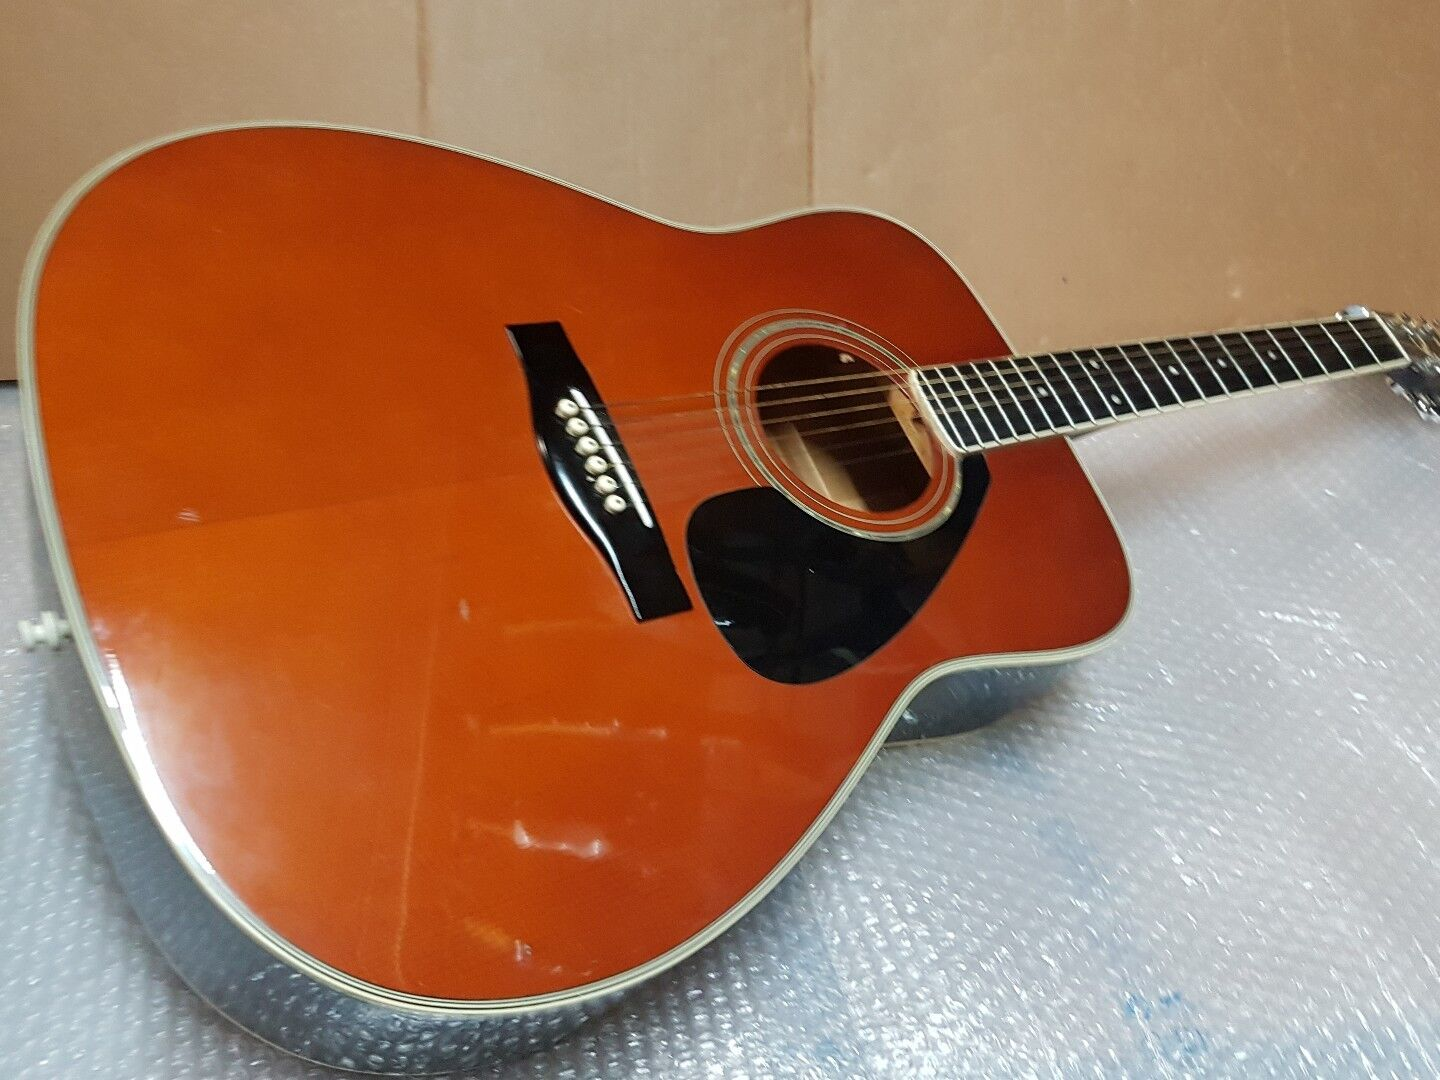 80's YAMAHA STEEL STRING - HISTORIC SPECIAL EDITION